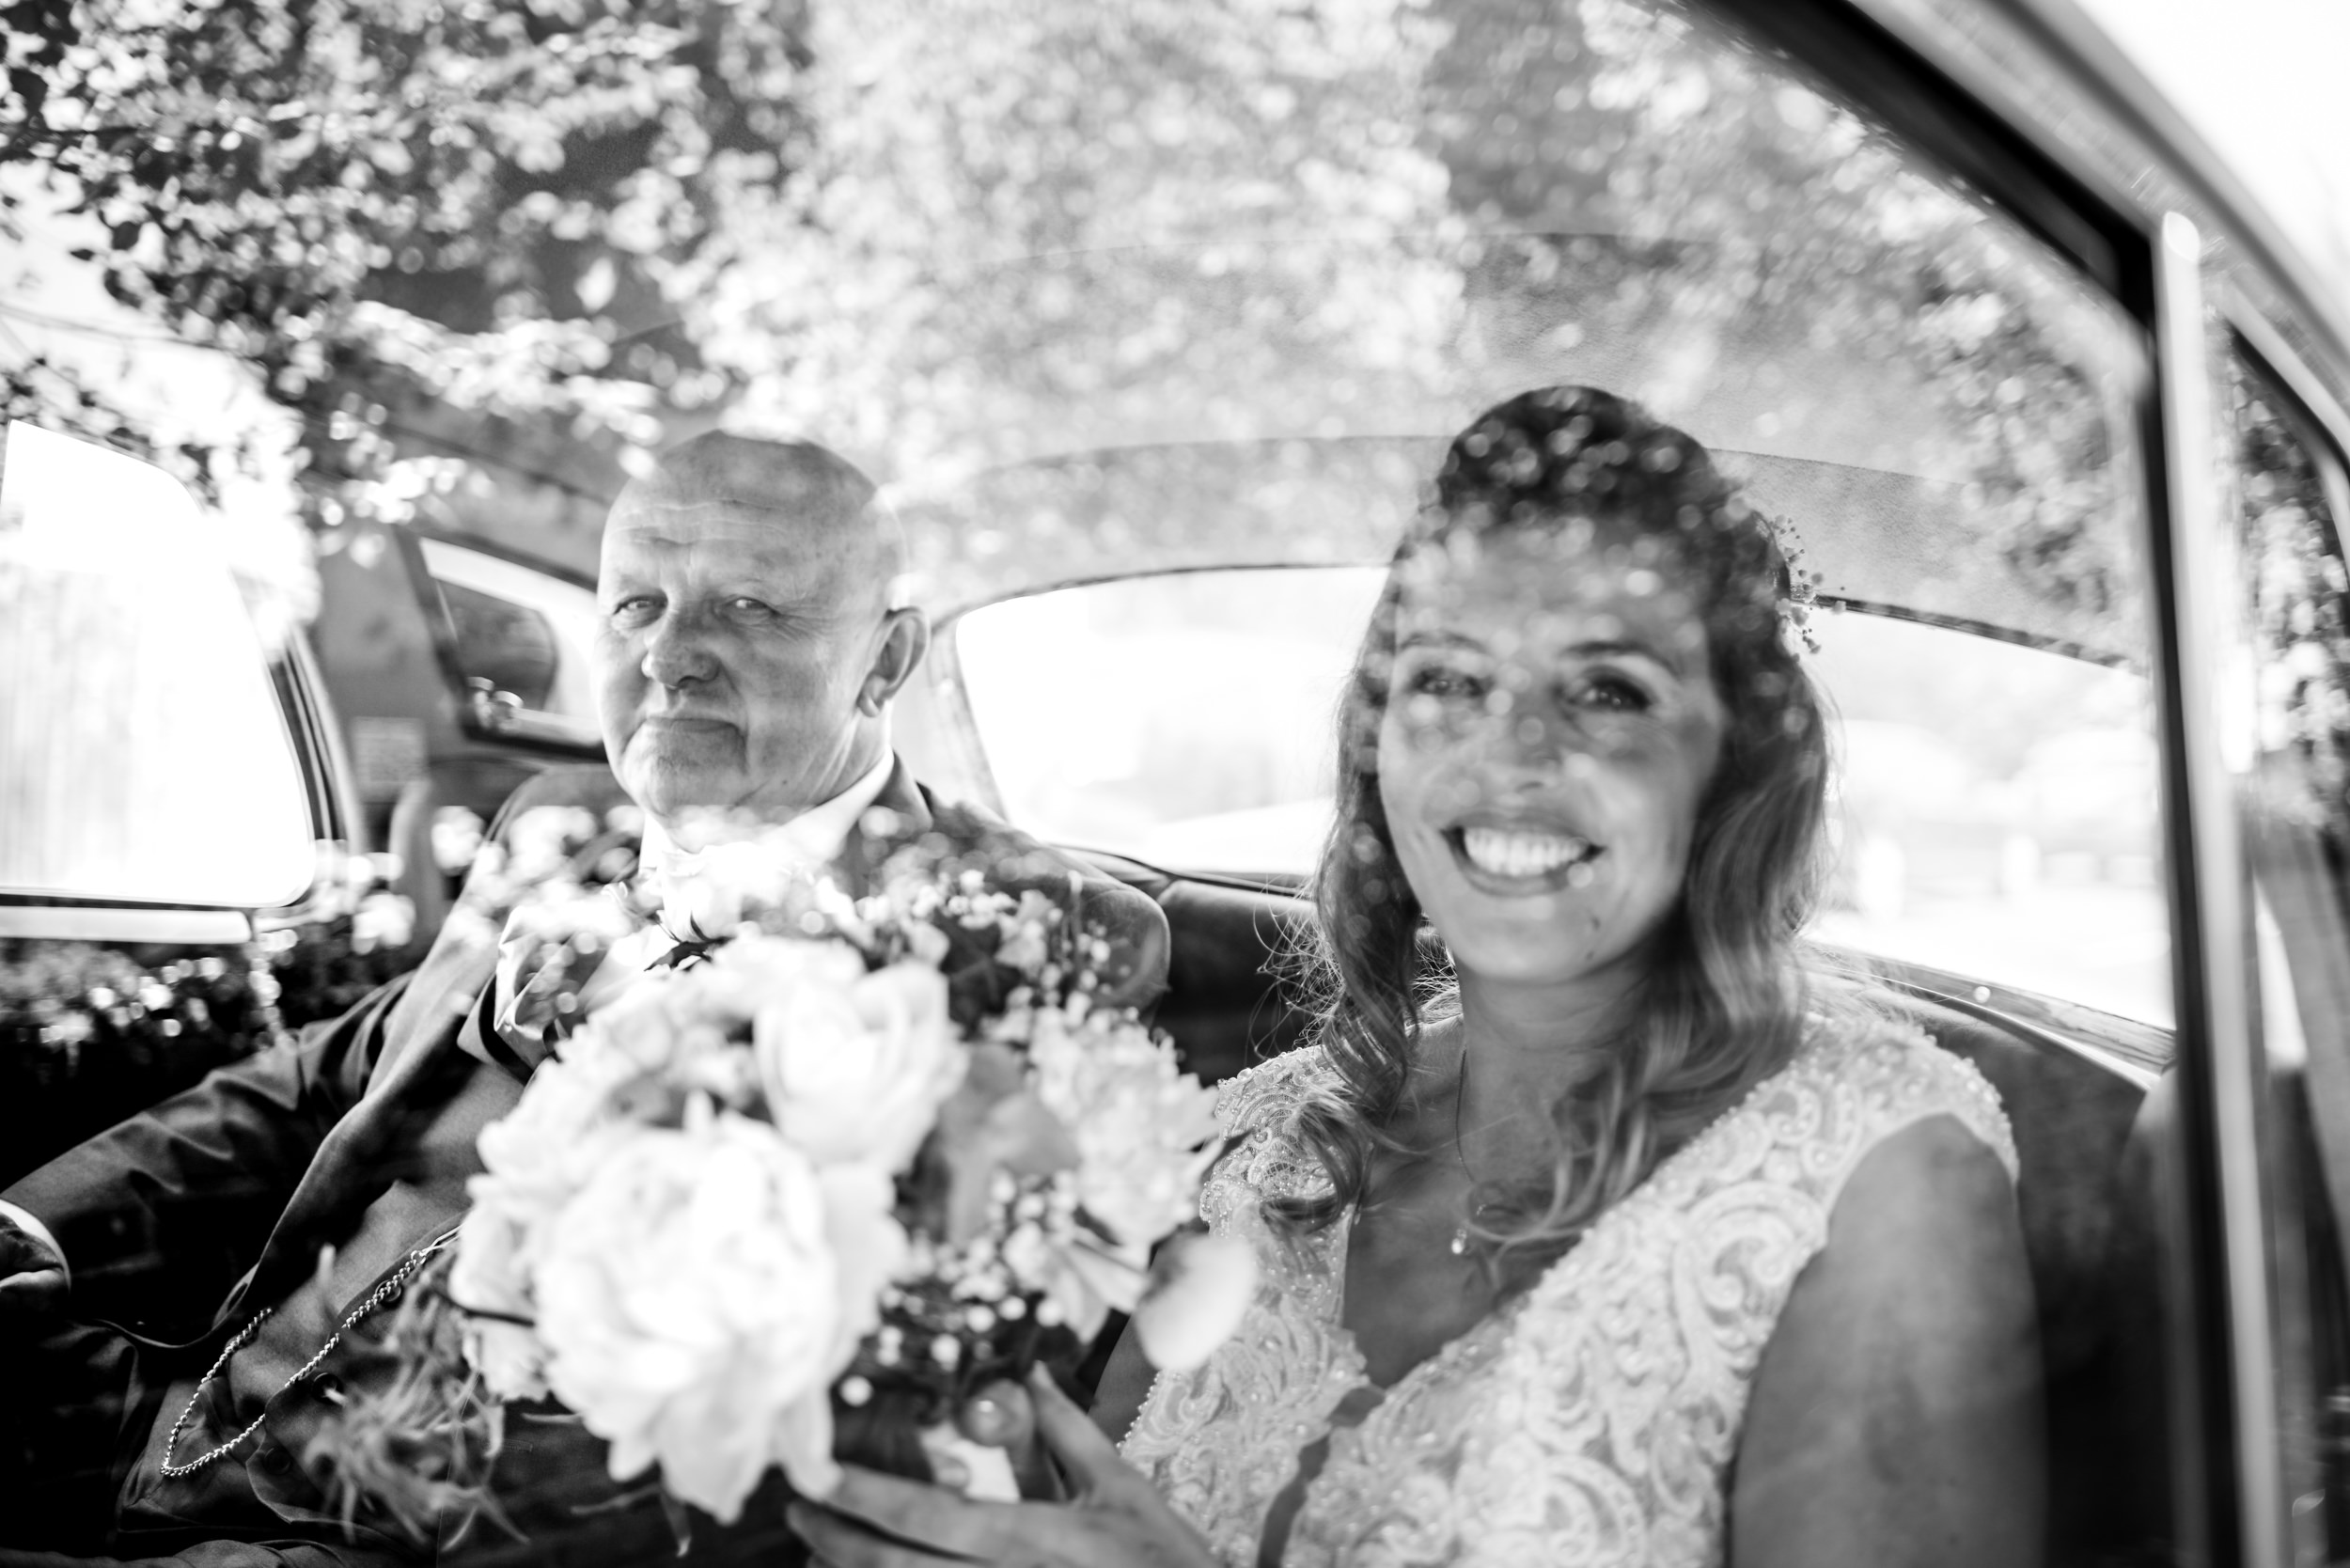 Father of the bride and bride in the Wedding car arriving at Church for the ceremony